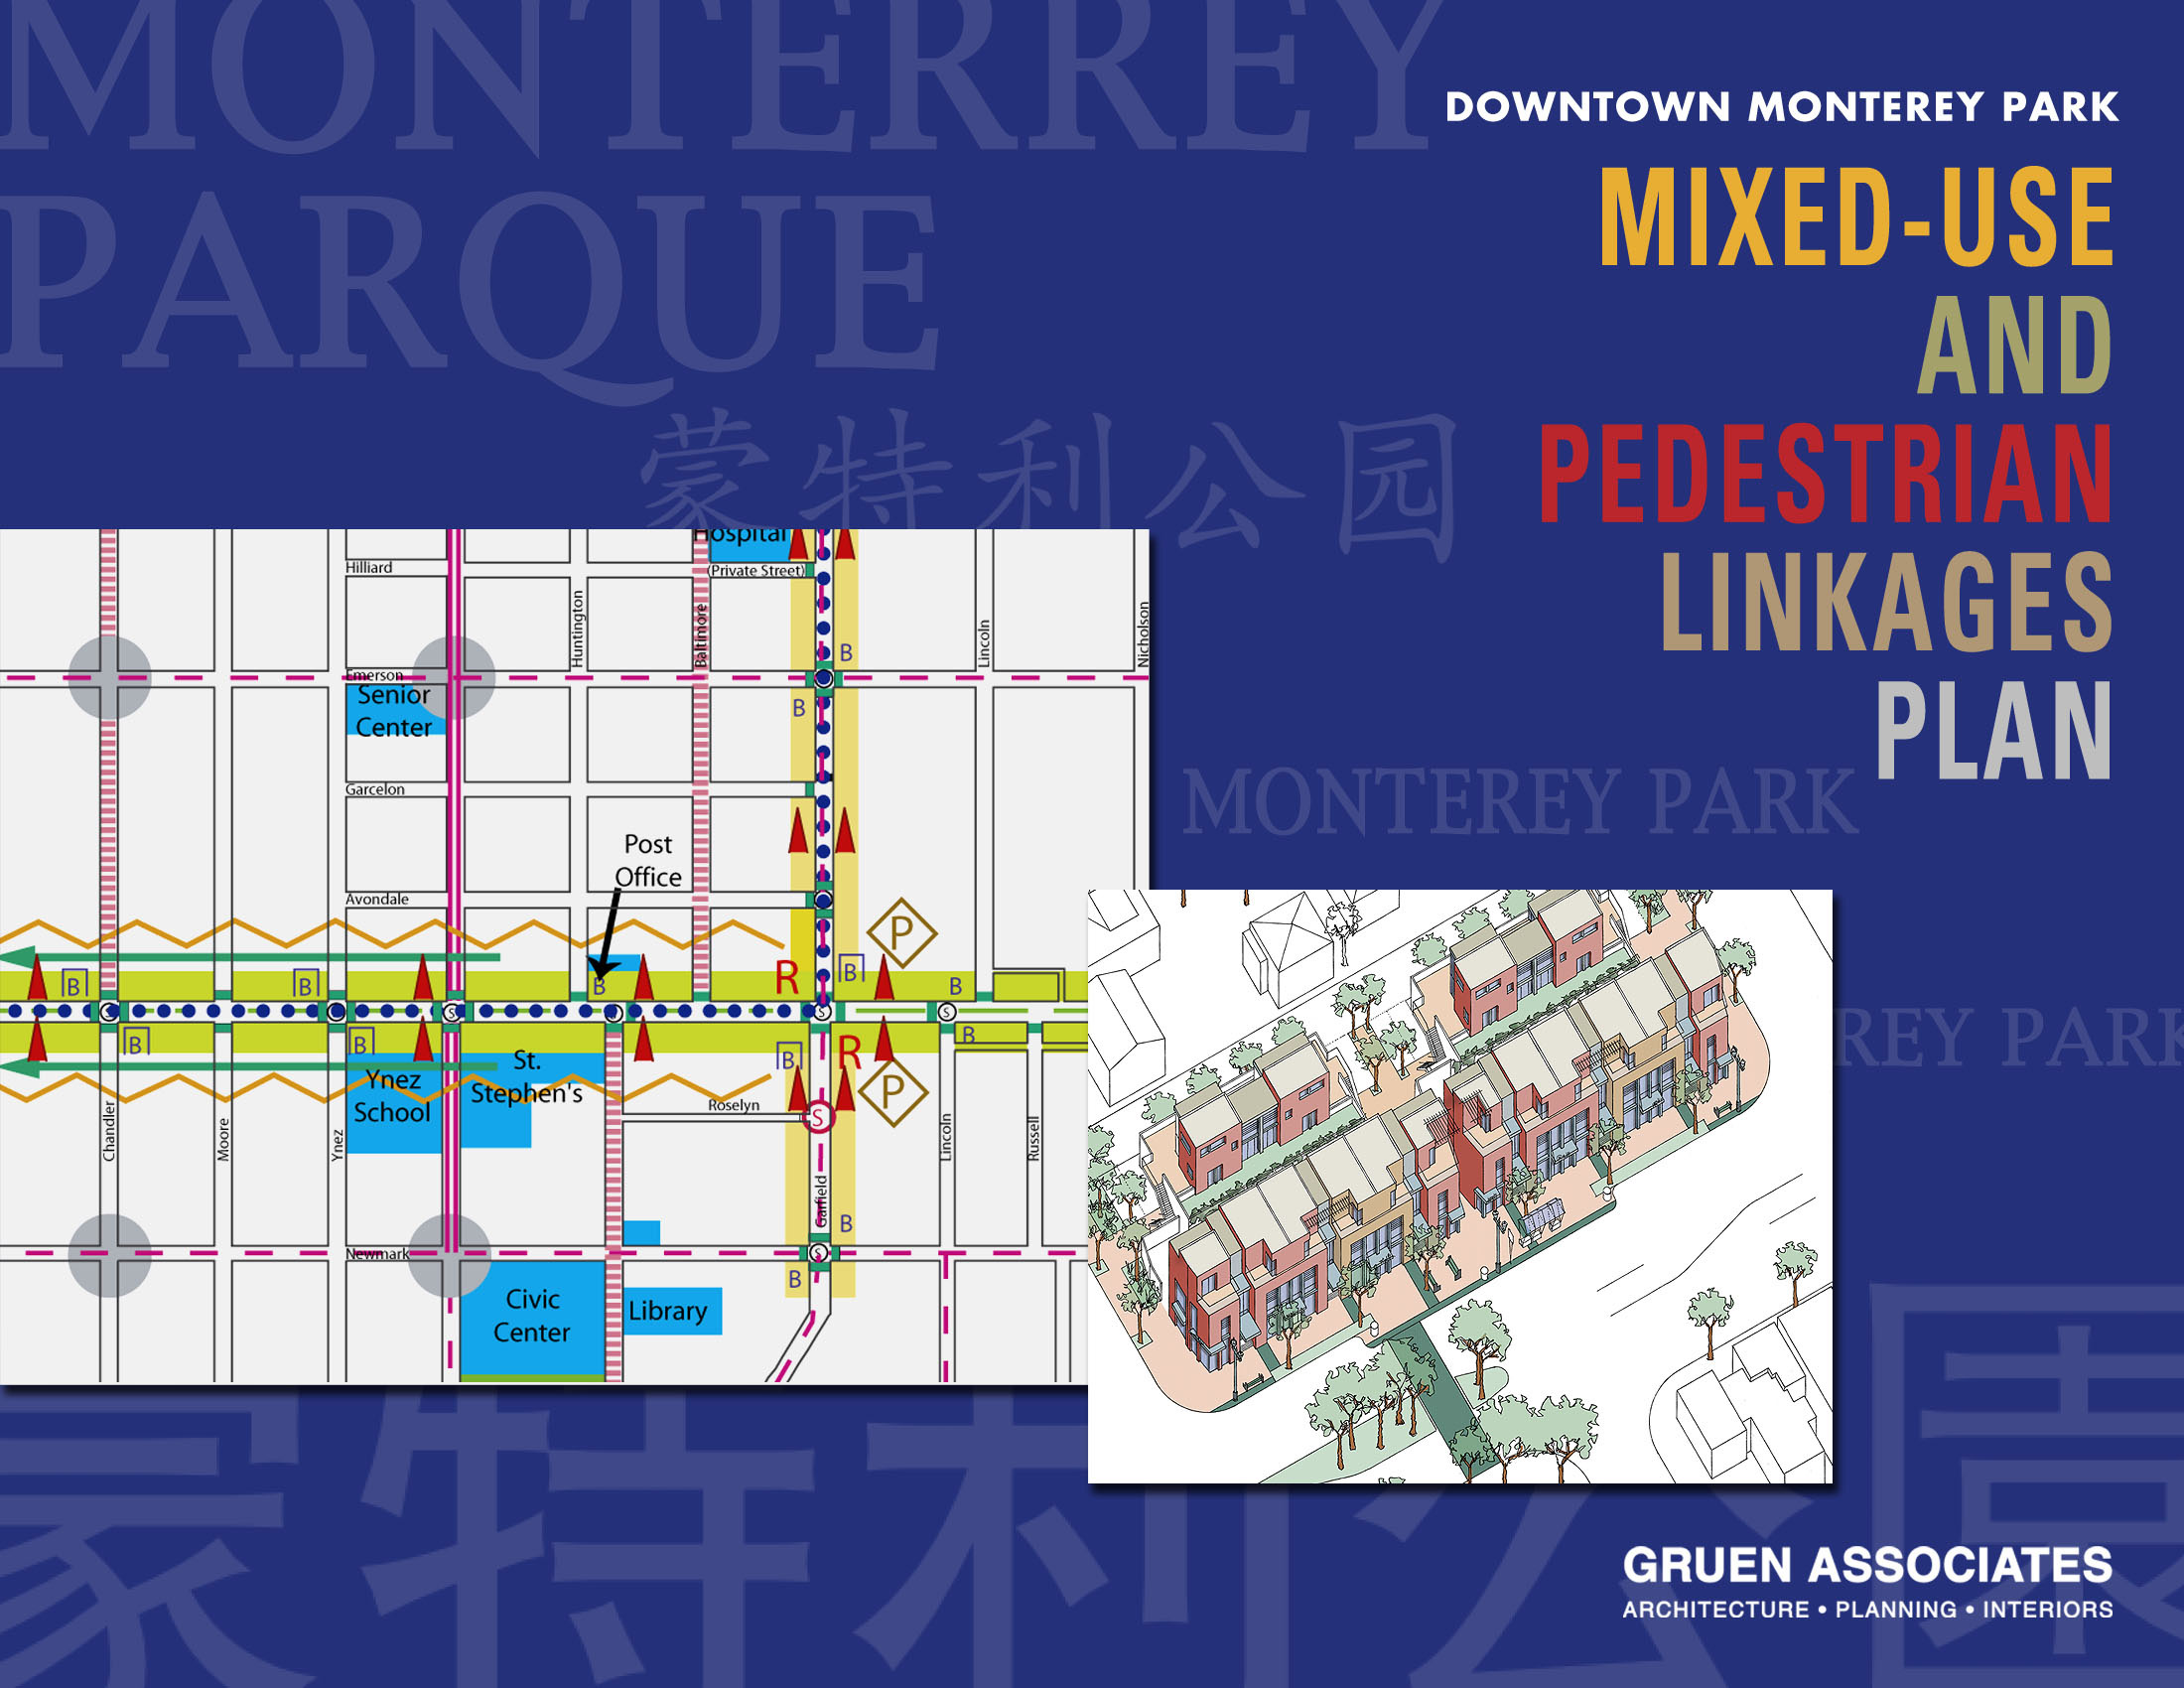 mixed-use and pedestrian linkages plan 08-09-04_Page_001